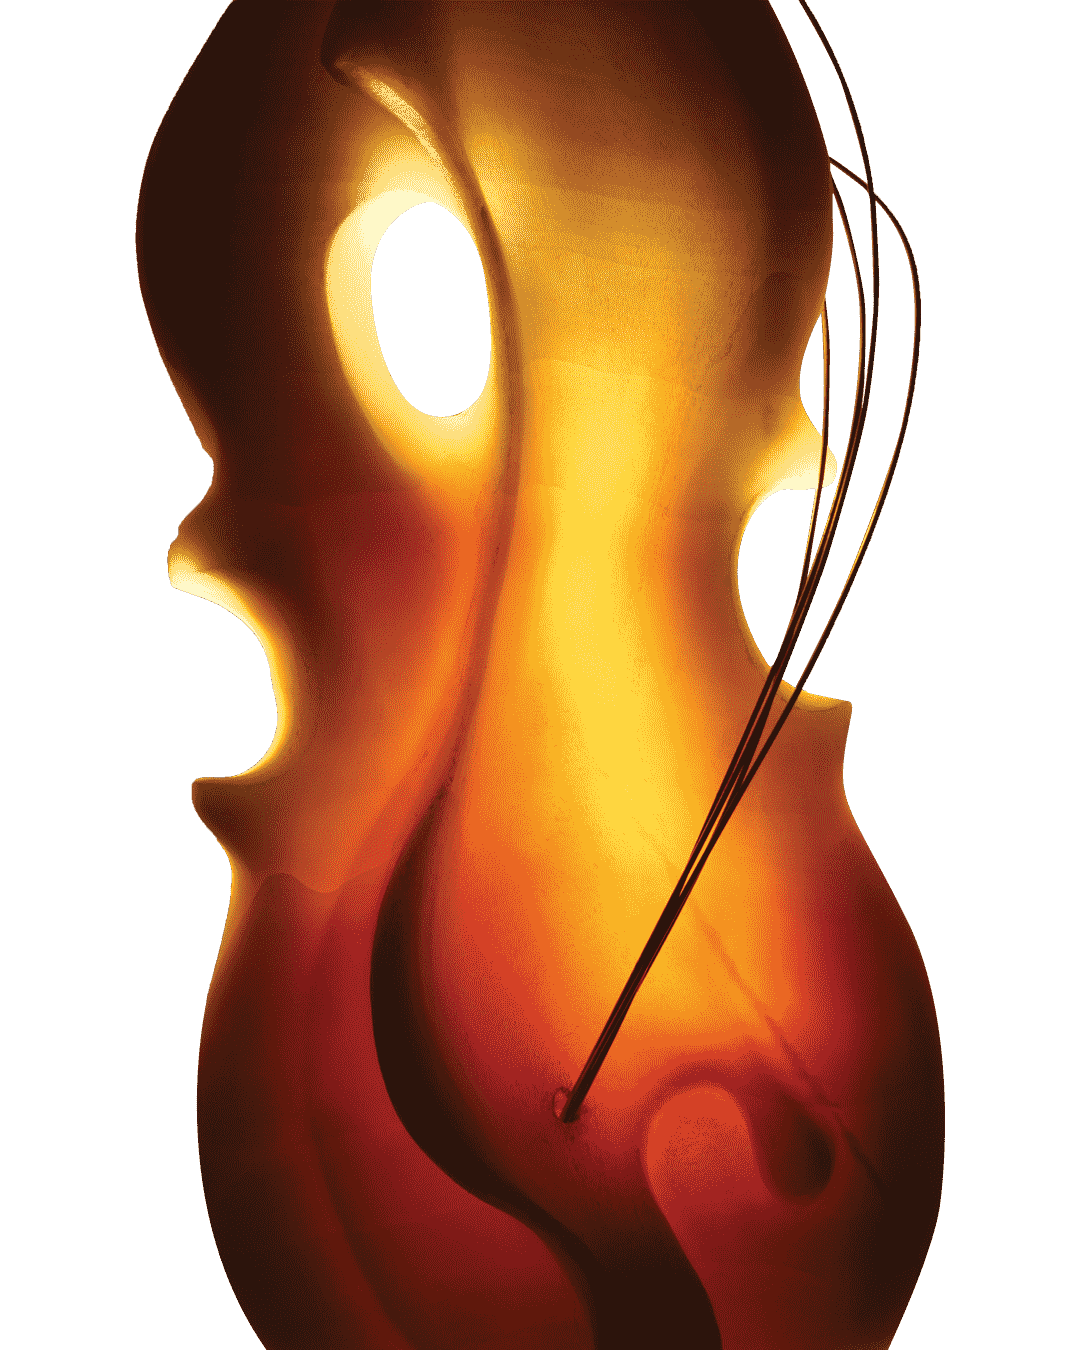 work from Musical Instruments category